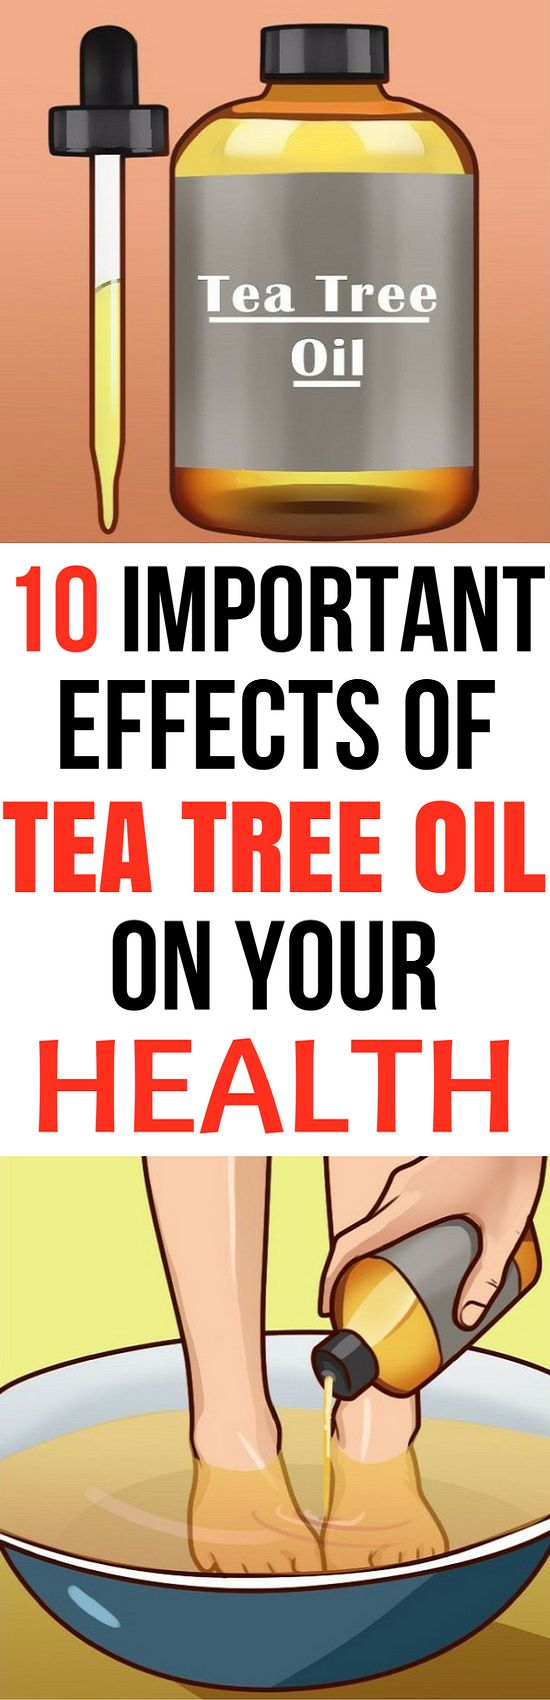 10 Important Effects of Tea Tree Oil on Our Health